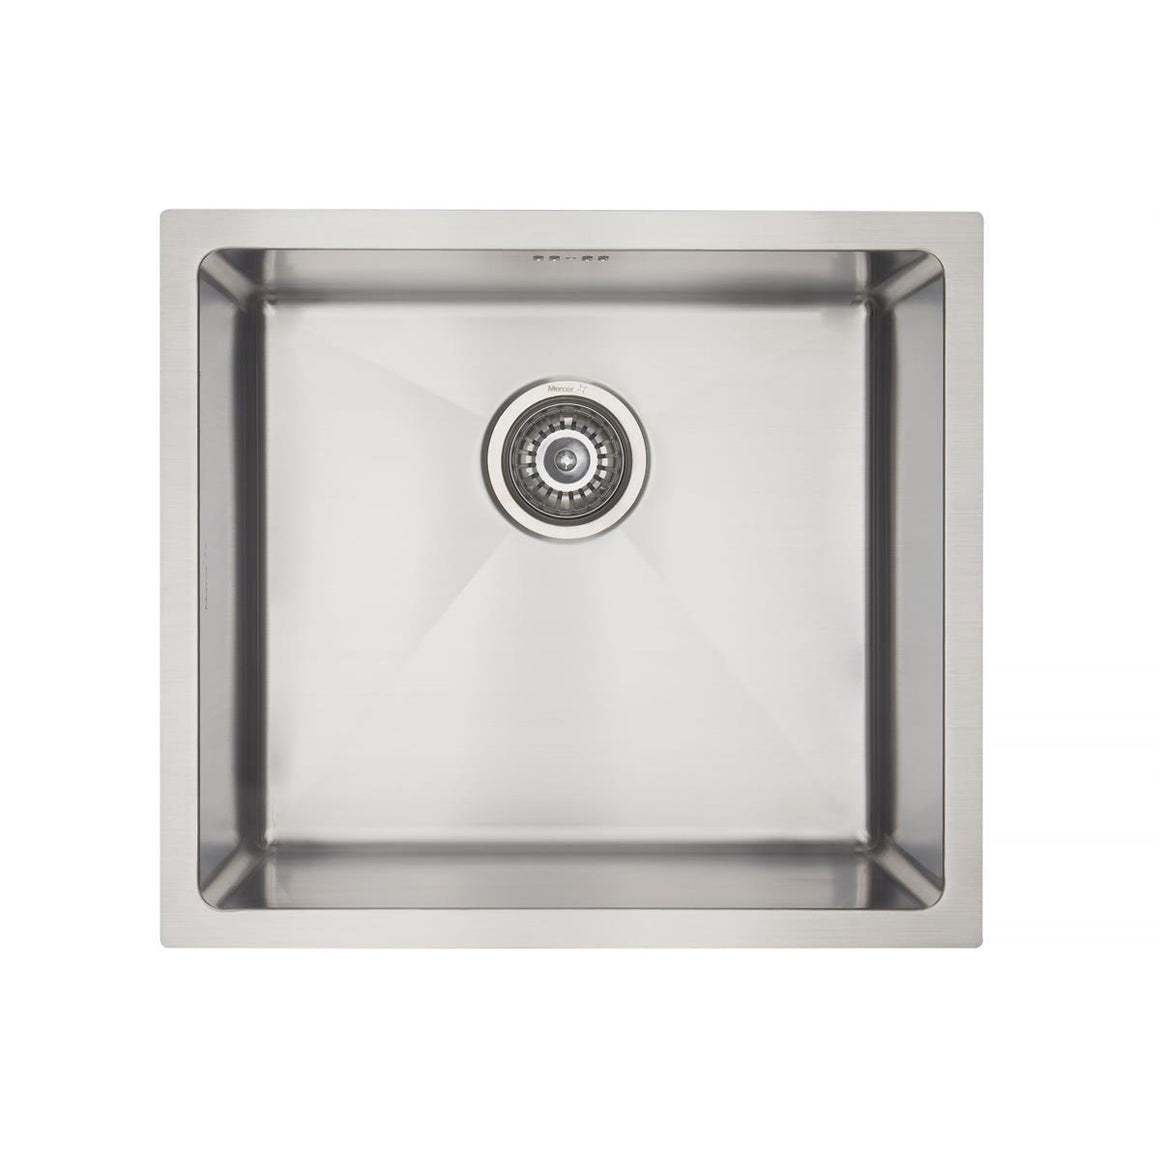 Mercer DV105 Sink - Oxford 450 x 400mm